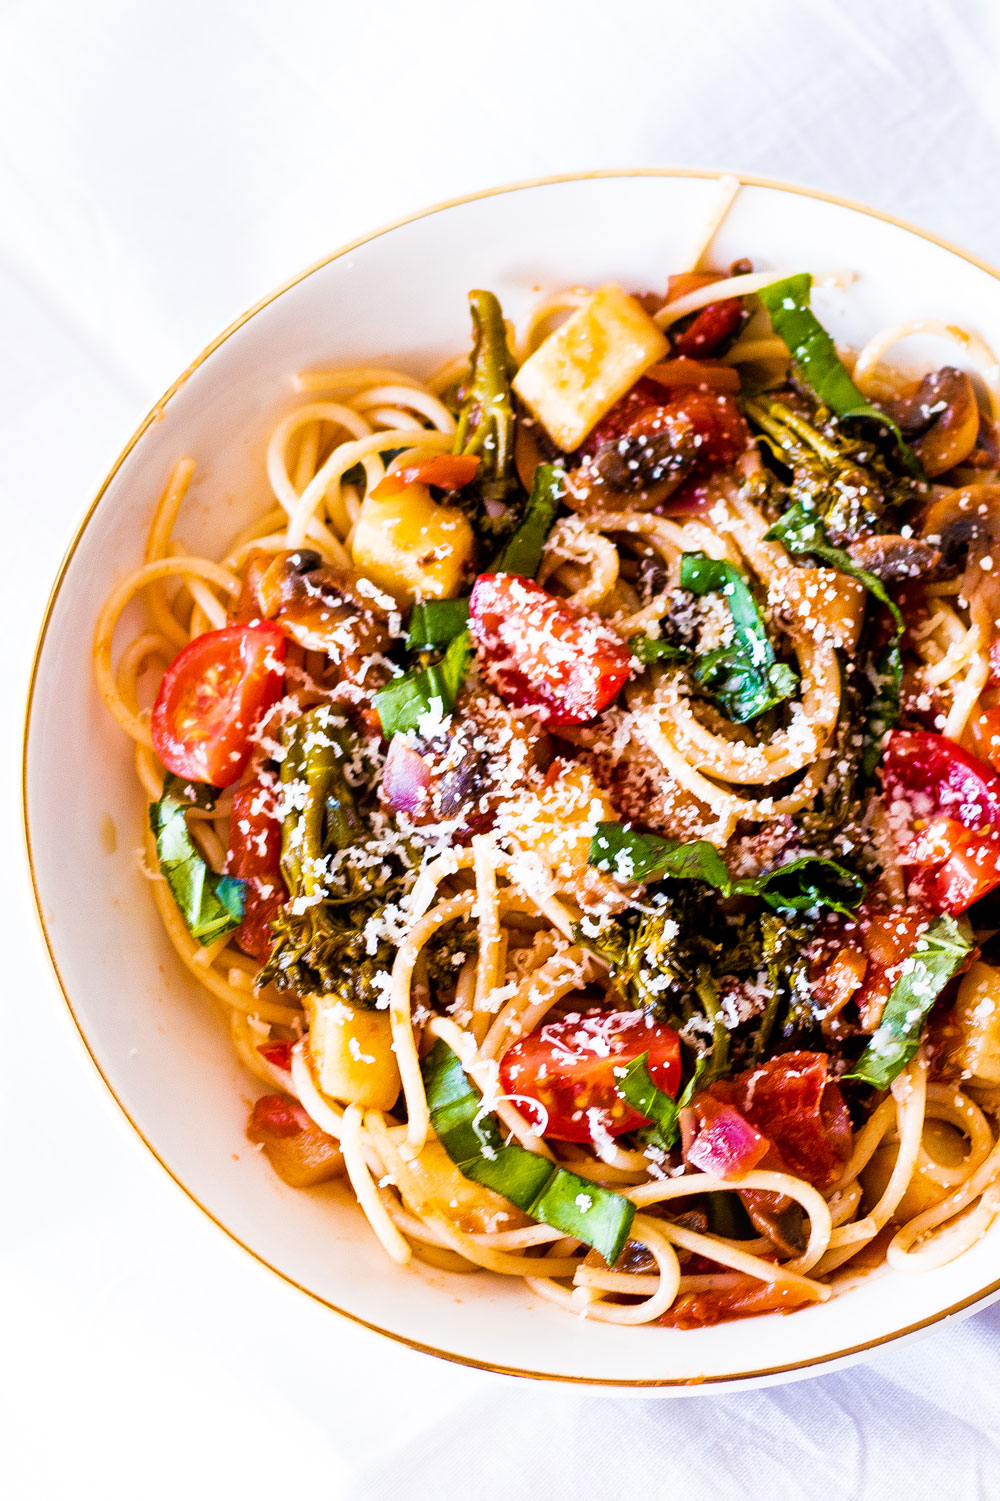 Whip up our easy Rustic Tomato Basil Vegetable Pasta in just 30 minutes. It's simple to make, delivers on flavor, and packs three of your 5-a-day into one delicious meal. https://www.spotebi.com/recipes/rustic-tomato-basil-vegetable-pasta/